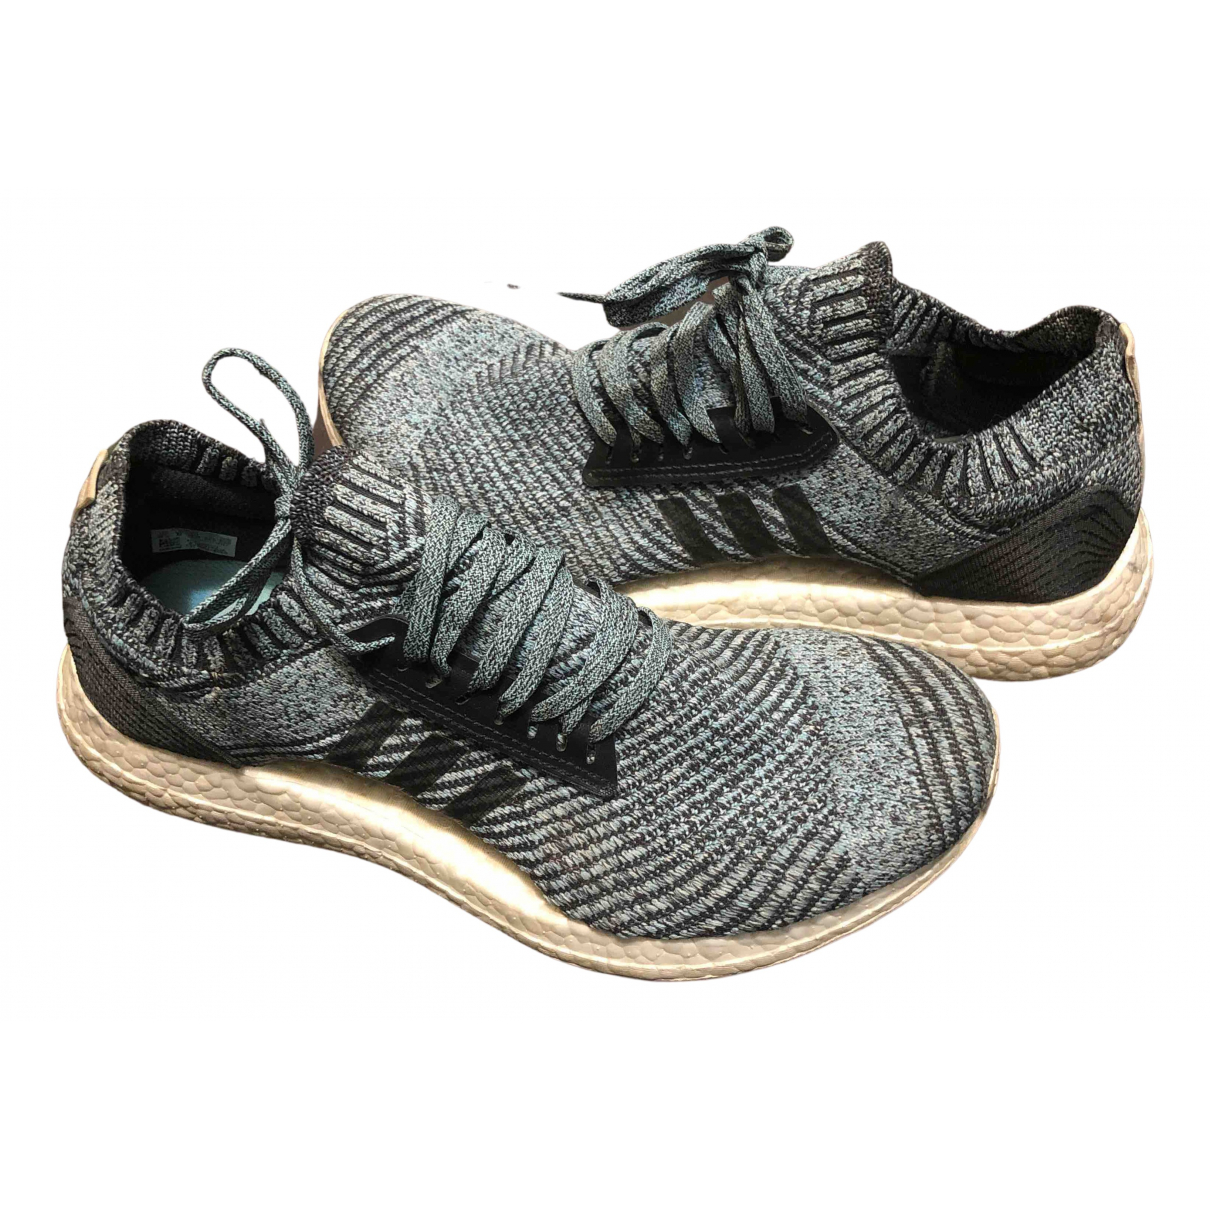 Adidas Ultraboost Blue Cloth Trainers for Women 8 UK